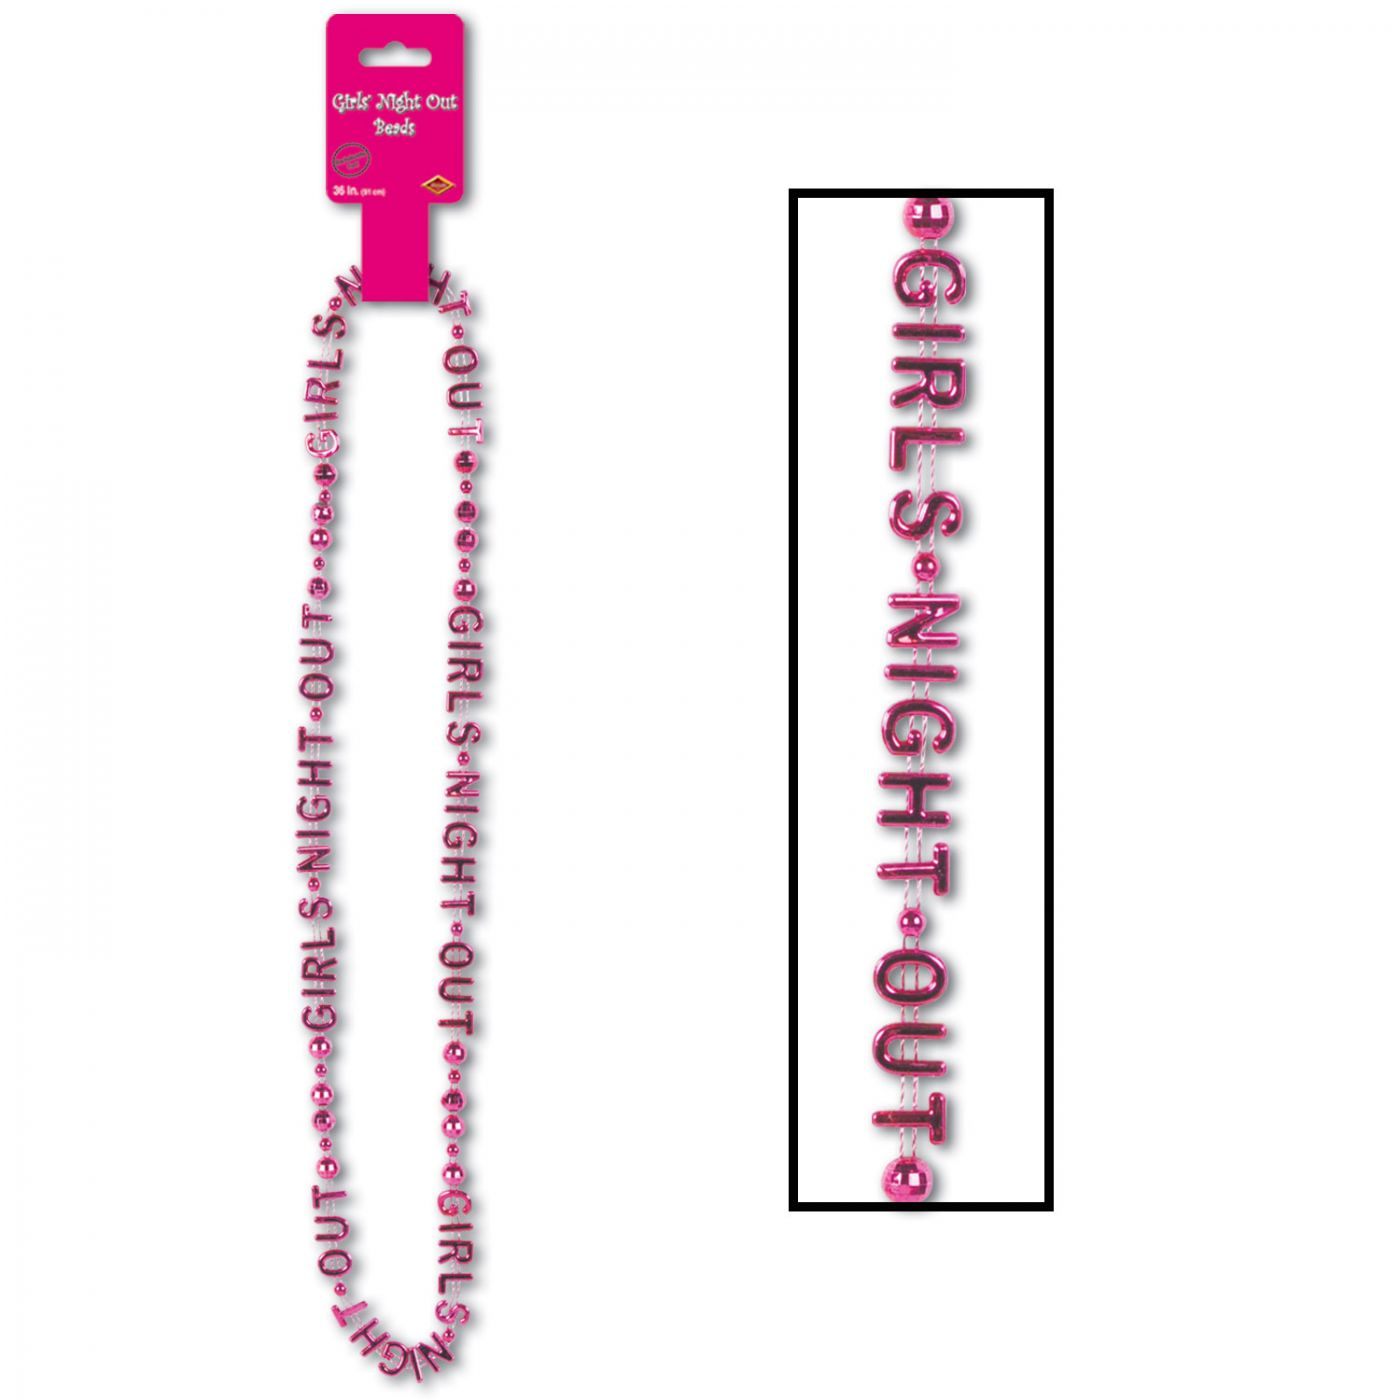 Girls' Night Out Beads-Of-Expression image